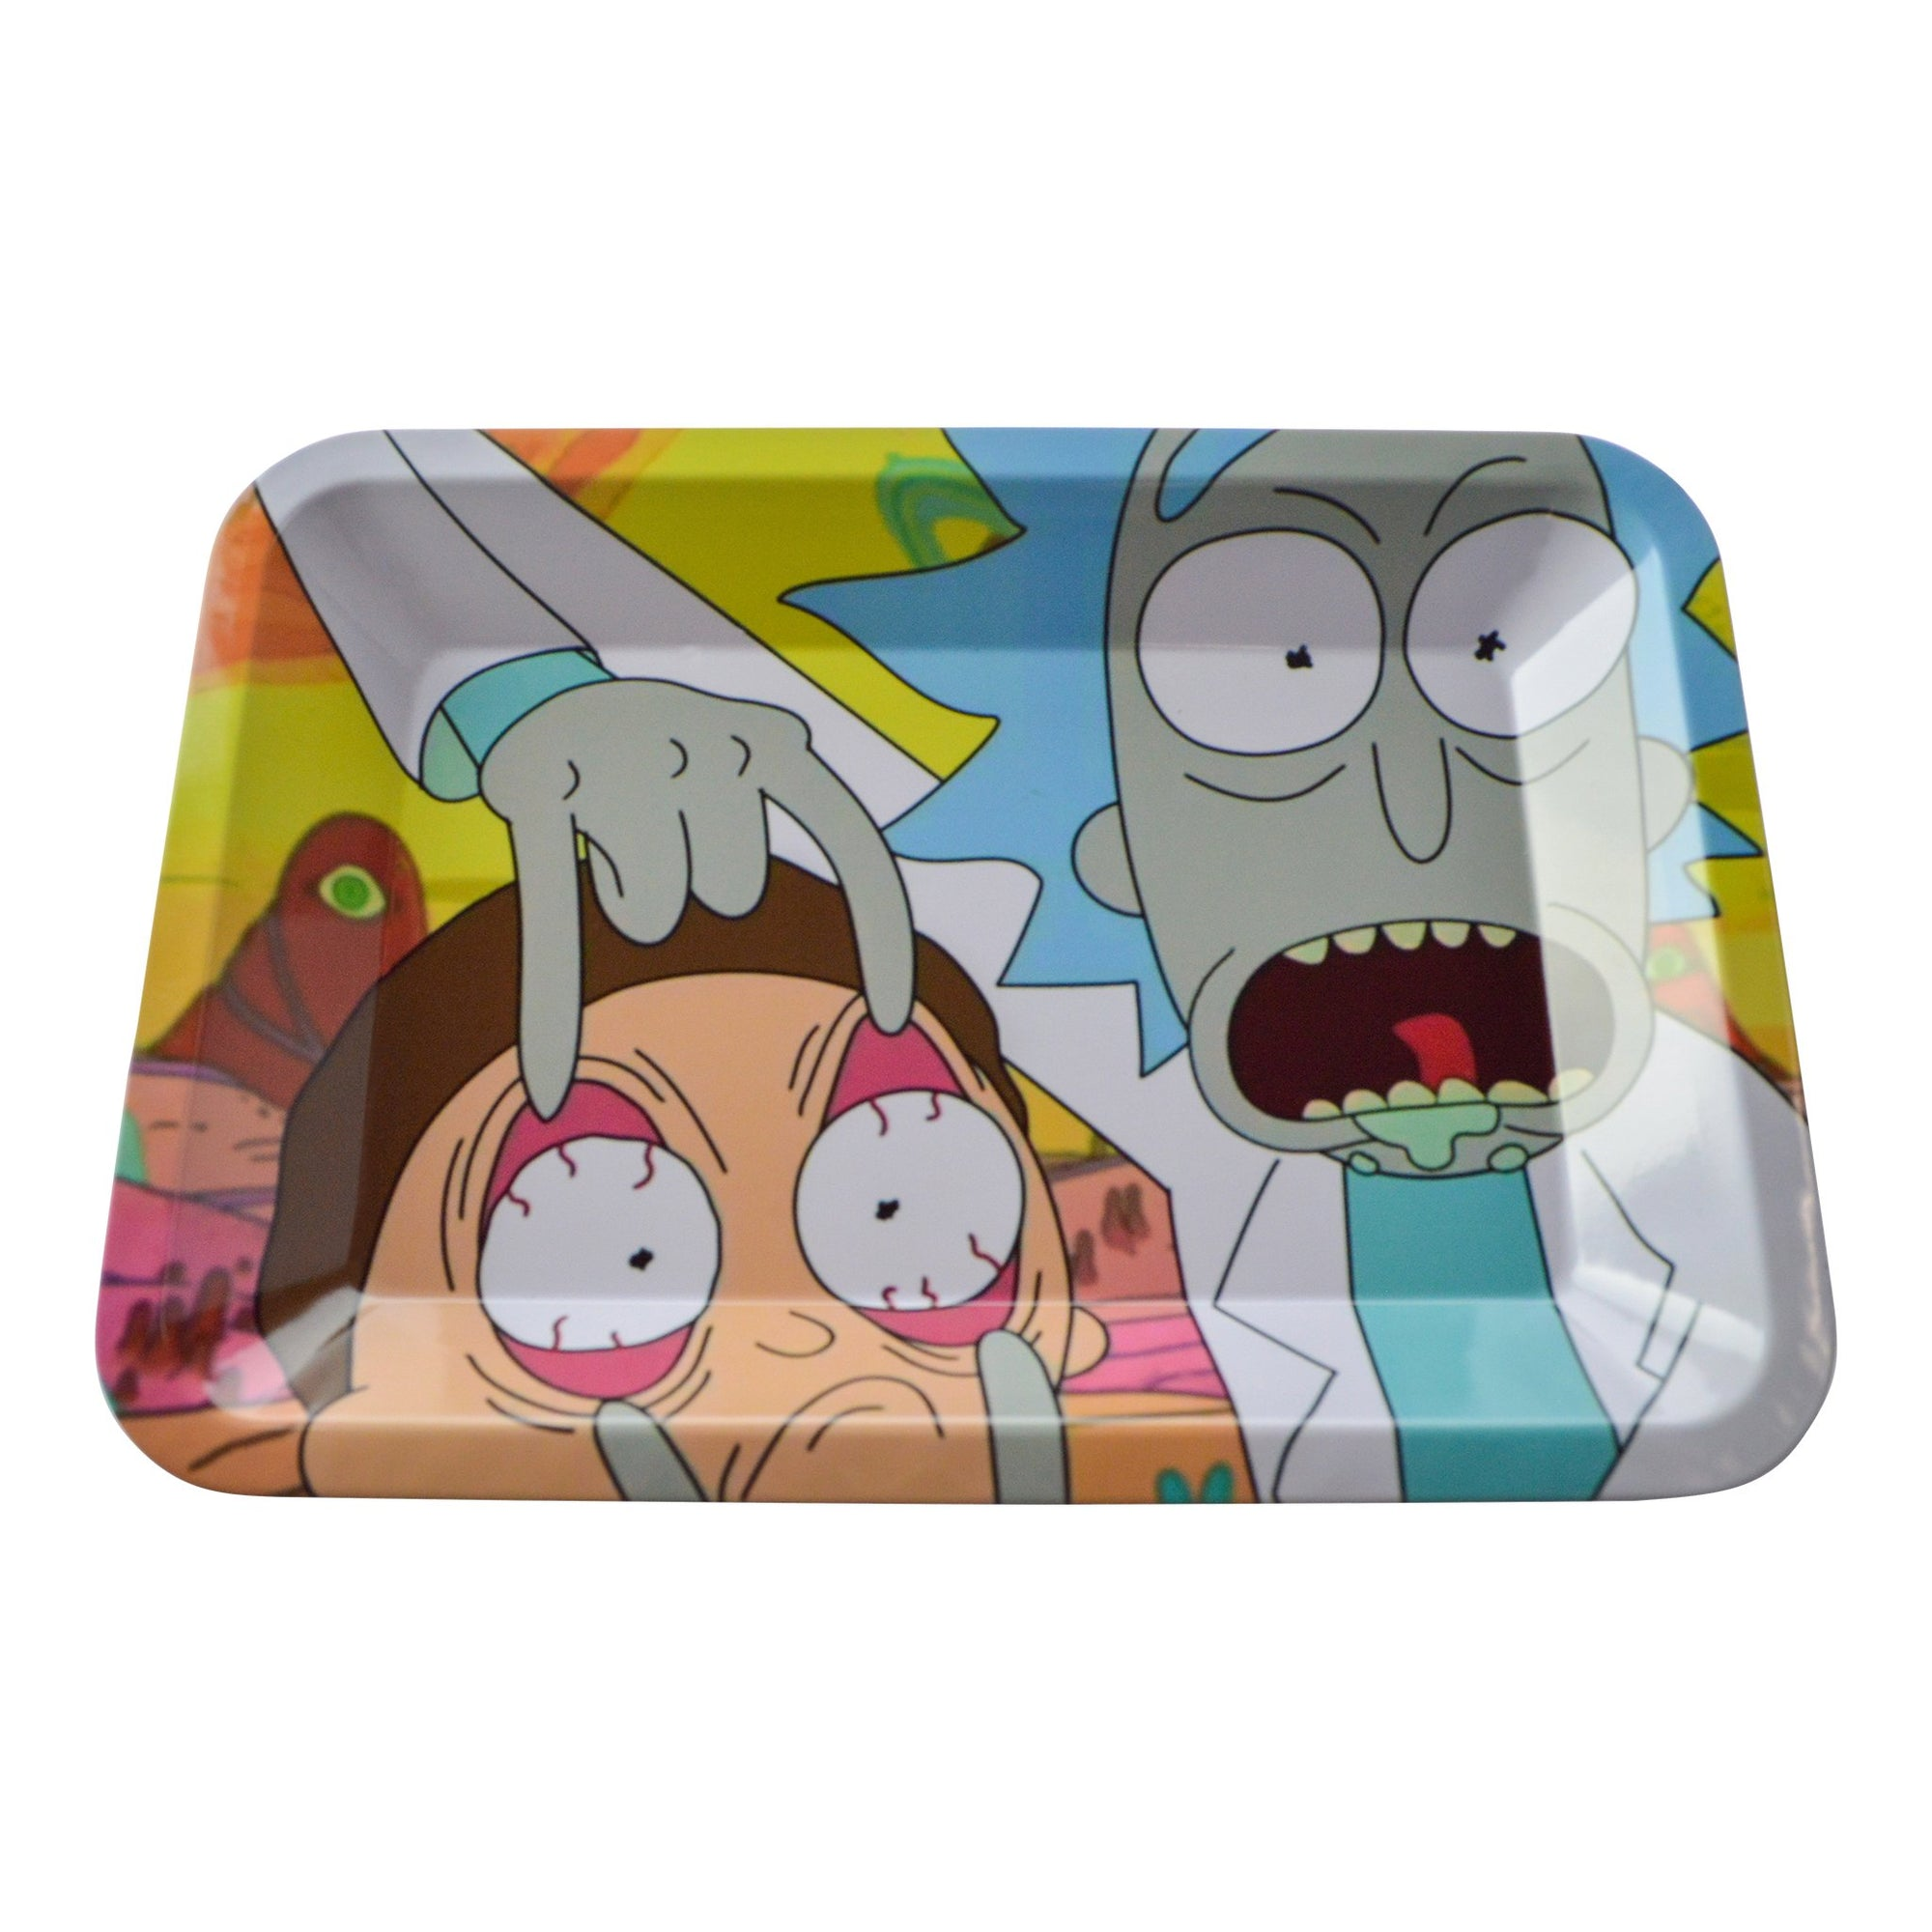 "7 inch square metal rolling tray with Rick stretching Morty's eyes ""Look Morty"" big eyes Rick open mouth tongue visible"